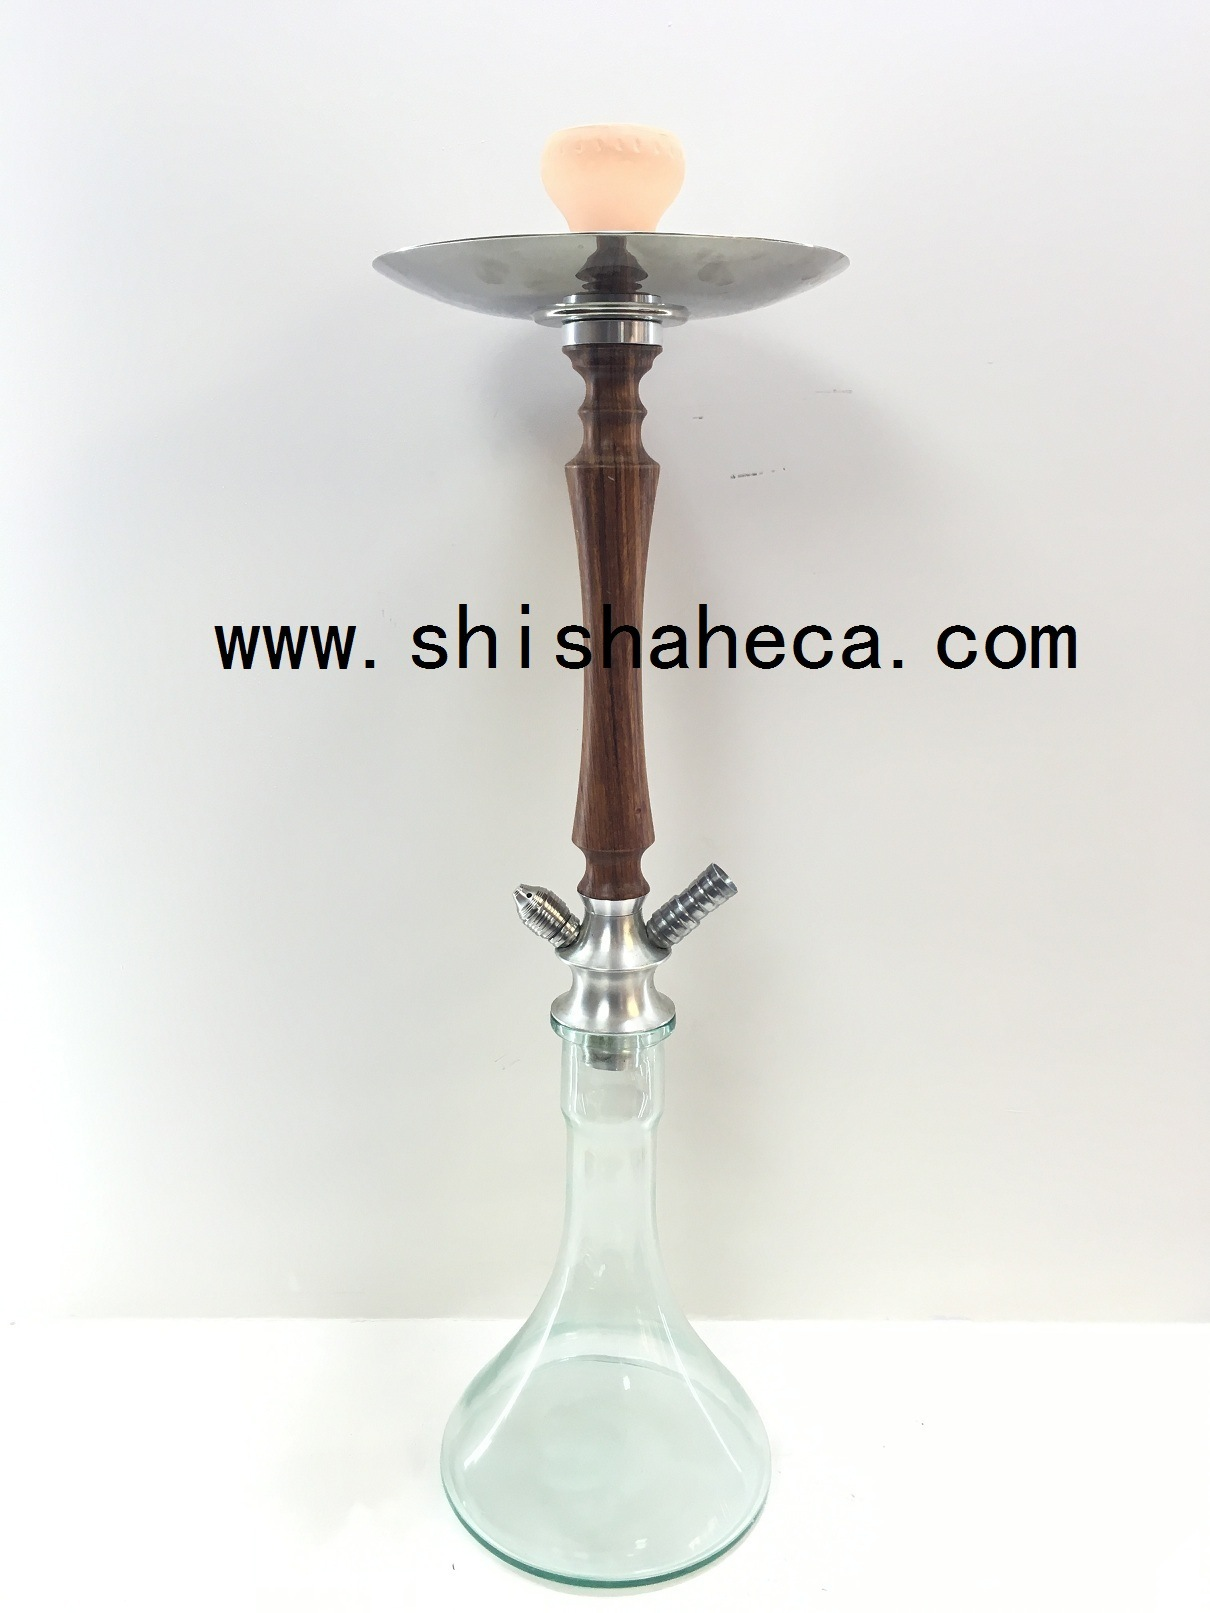 2017 Hot Sale Wood Hookah Nargile Smoking Pipe Hookah